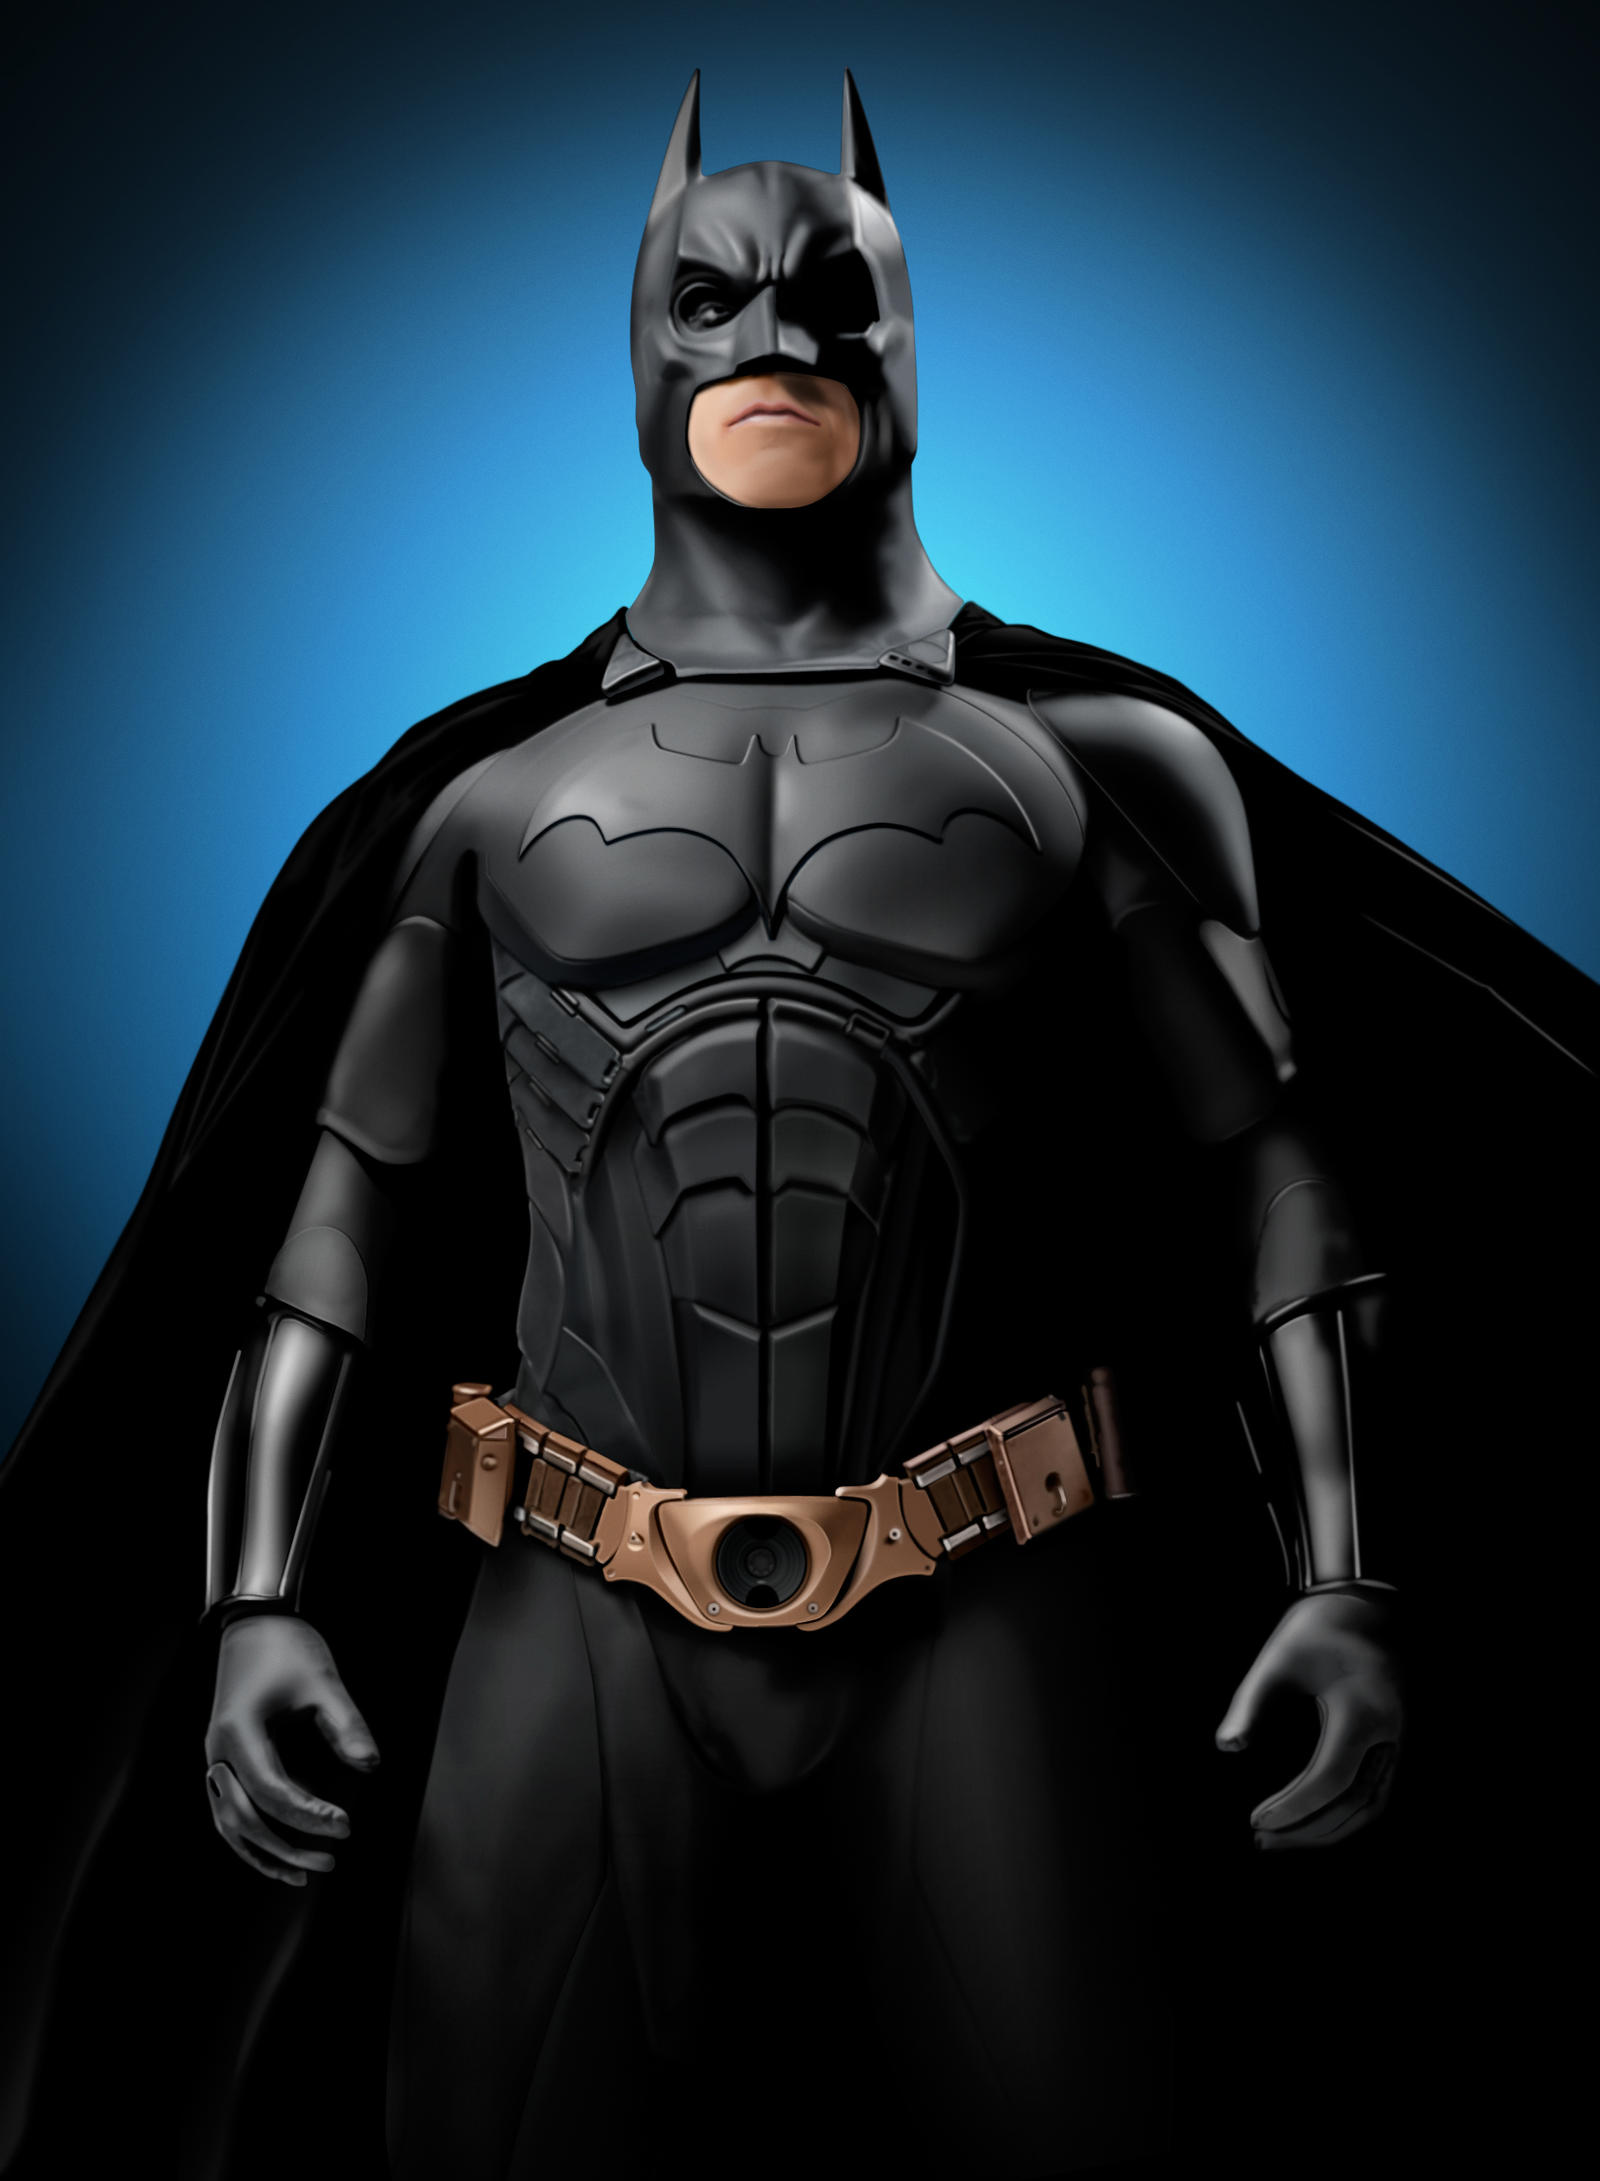 The Batman by Retoucher07030